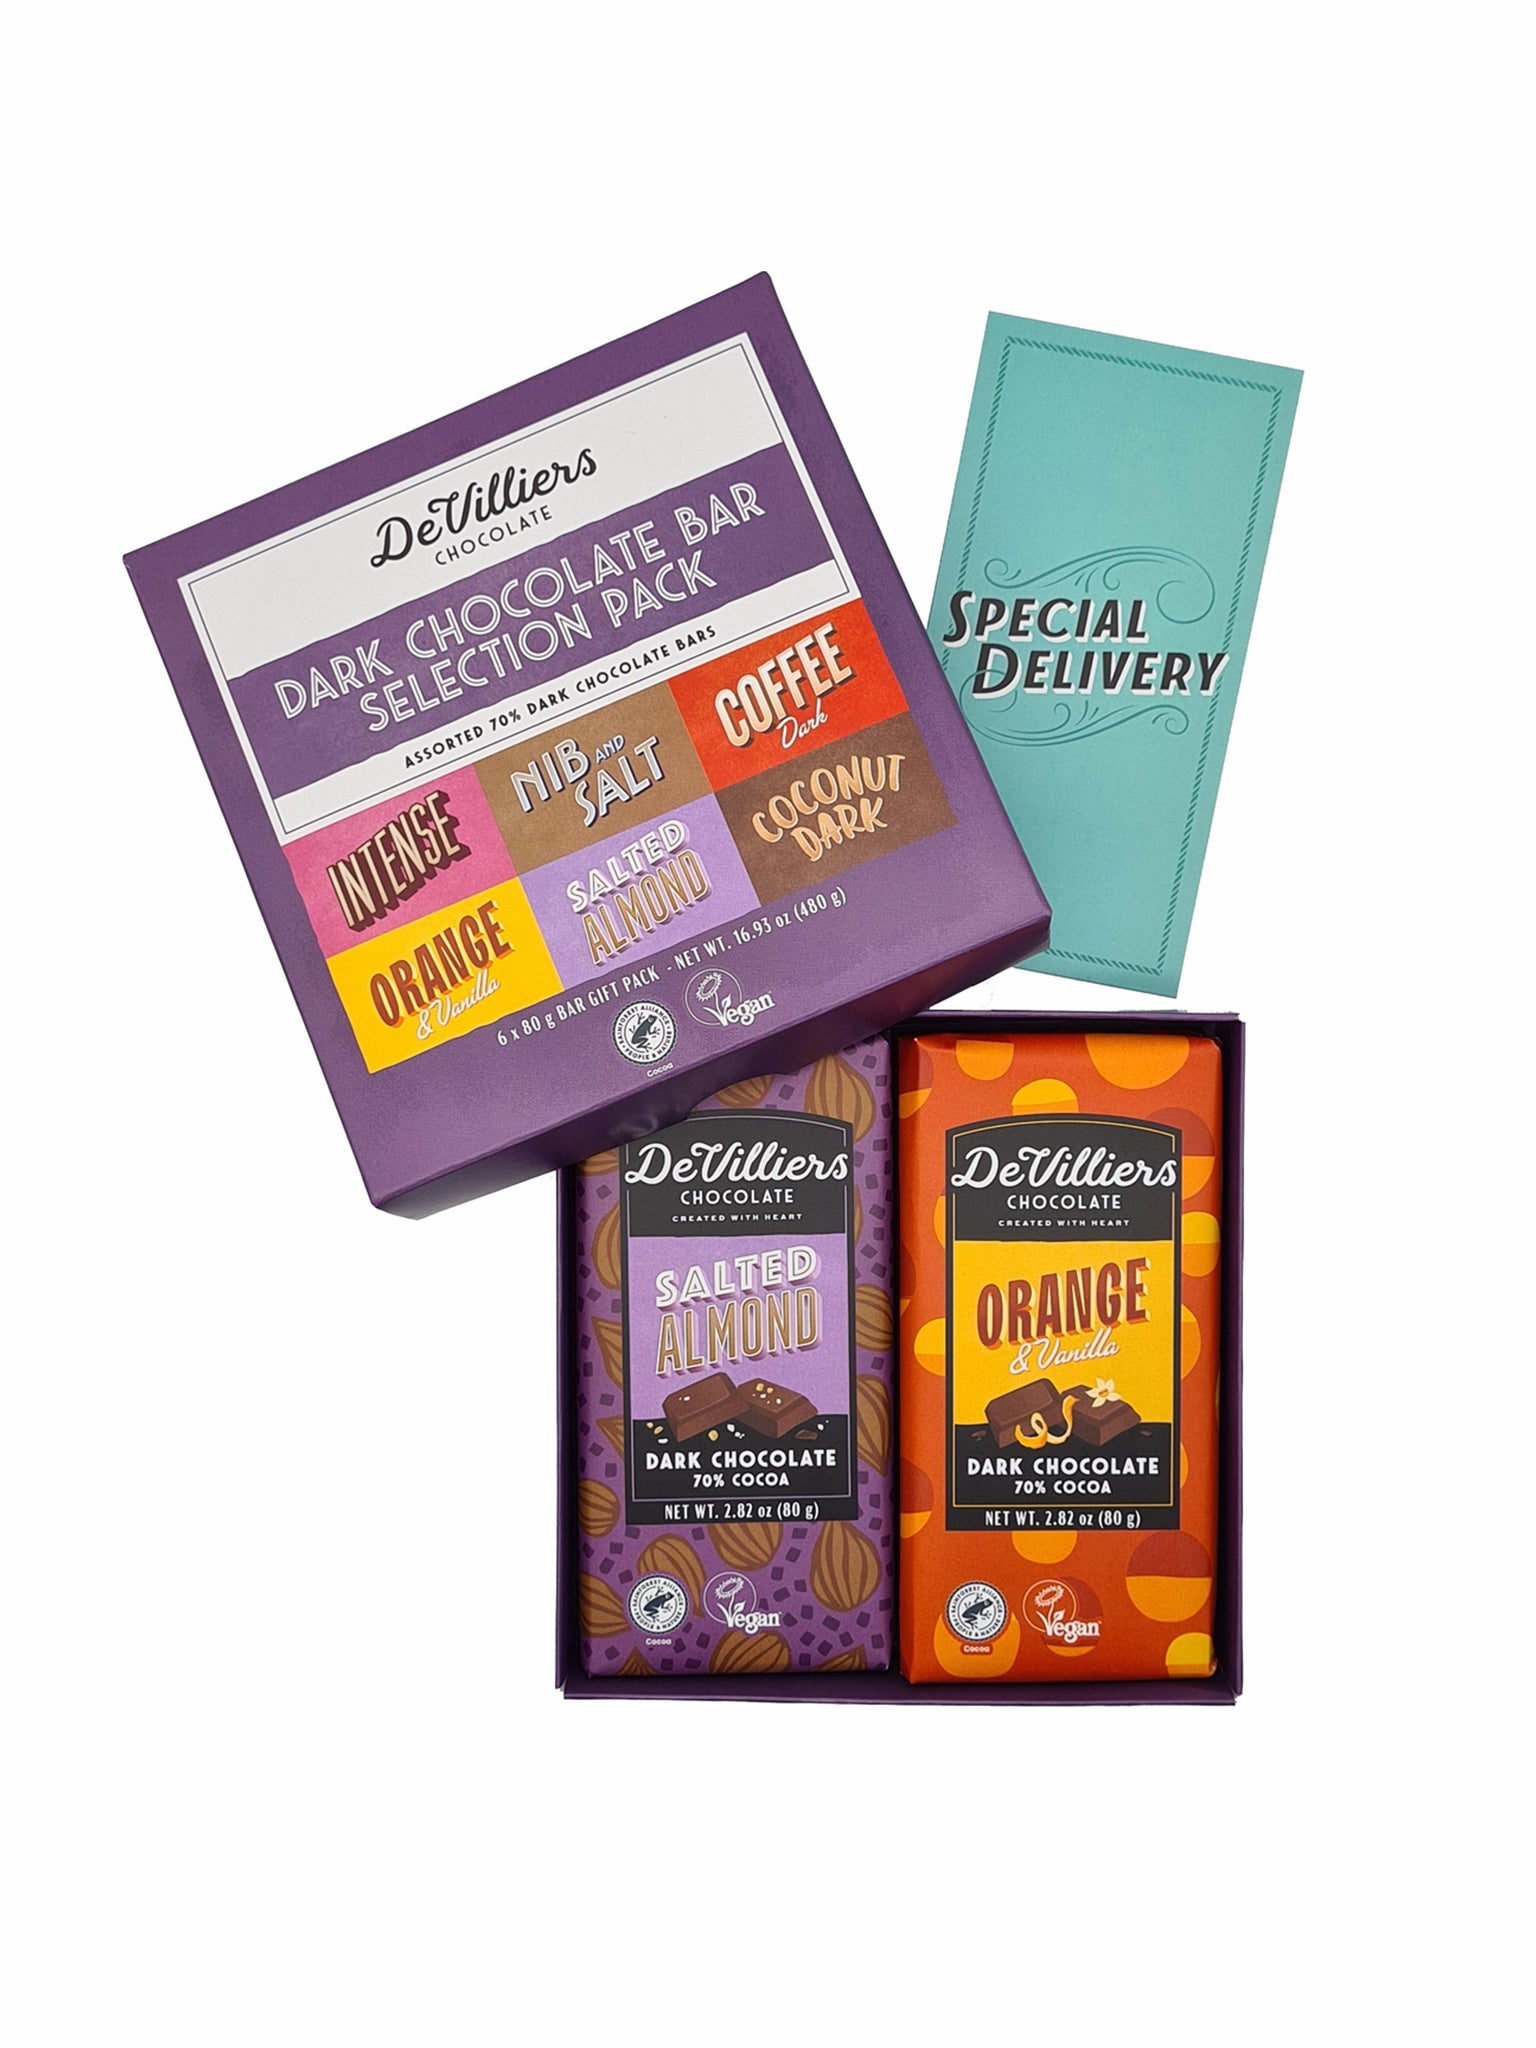 DARK CHOCOLATE BAR COMBINATION PACK - de villiers chocolate us